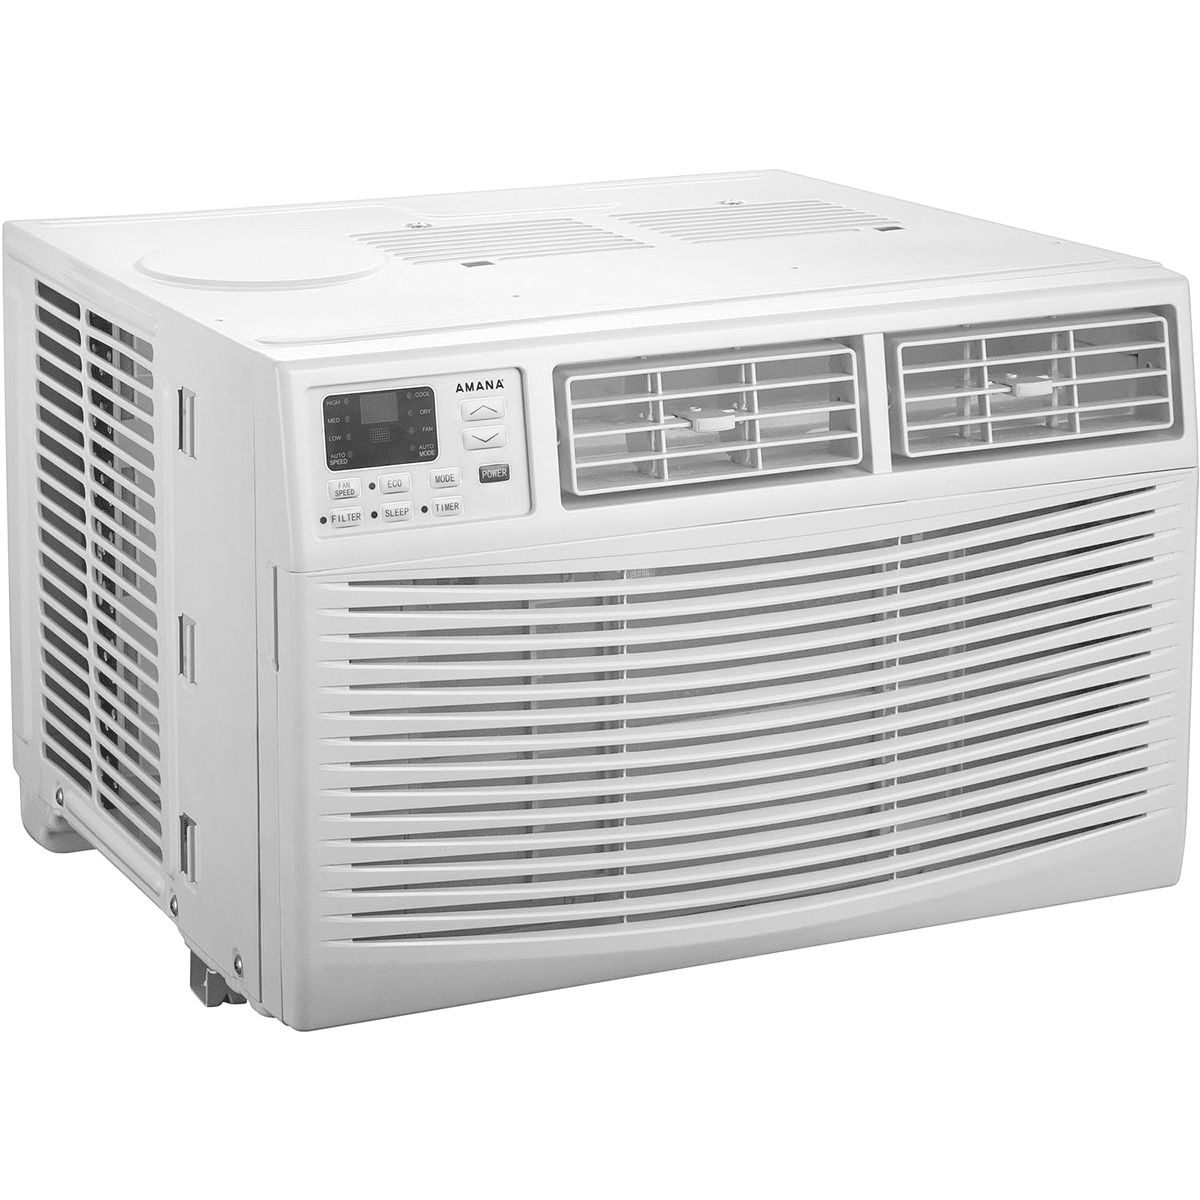 Amana 10,000 Btu Window Air Conditioner With Electronic Controls Amap101bw